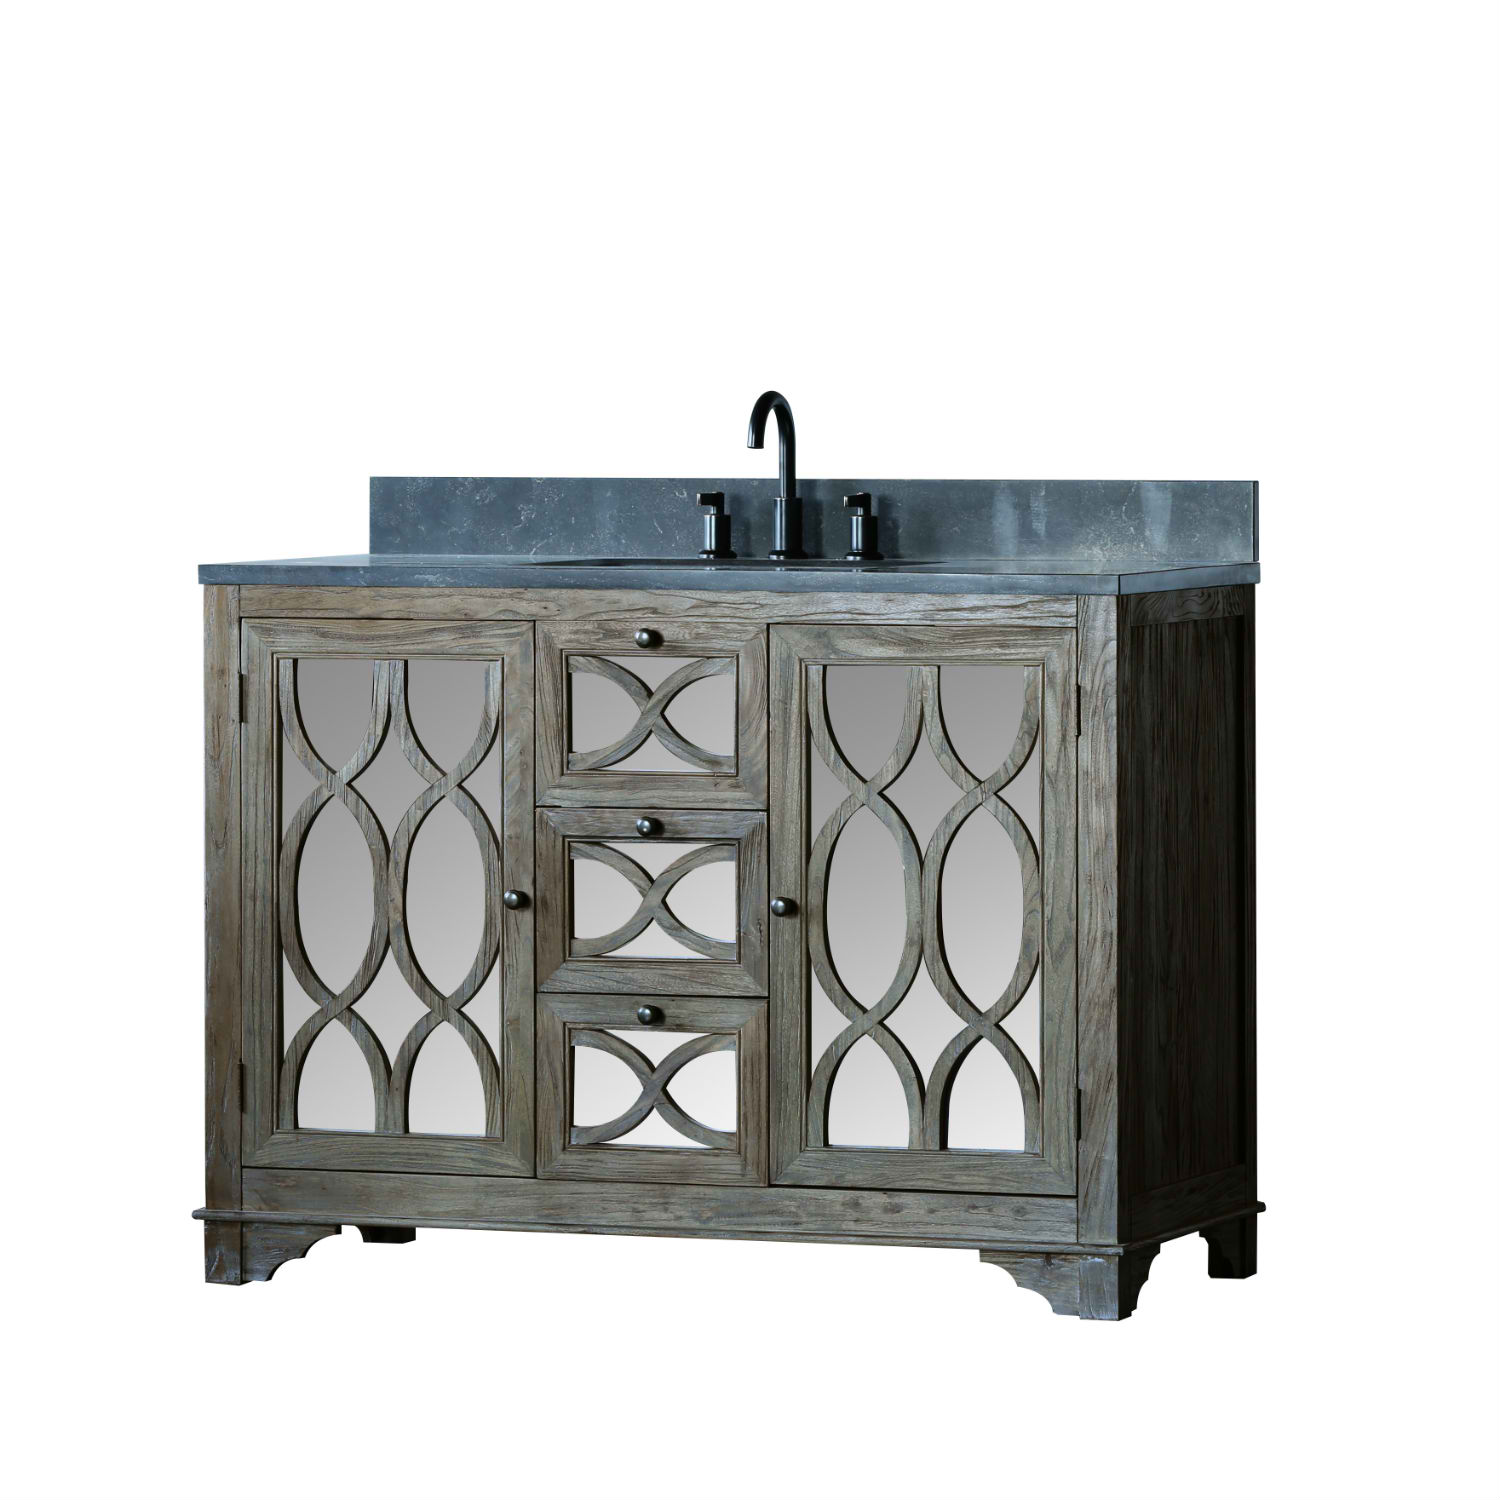 """48"""" Handcrafted Solid Wood Single Sink Brushed Natural Finish with Natural Moon Stone Top Style Bathroom Sink Vanity"""